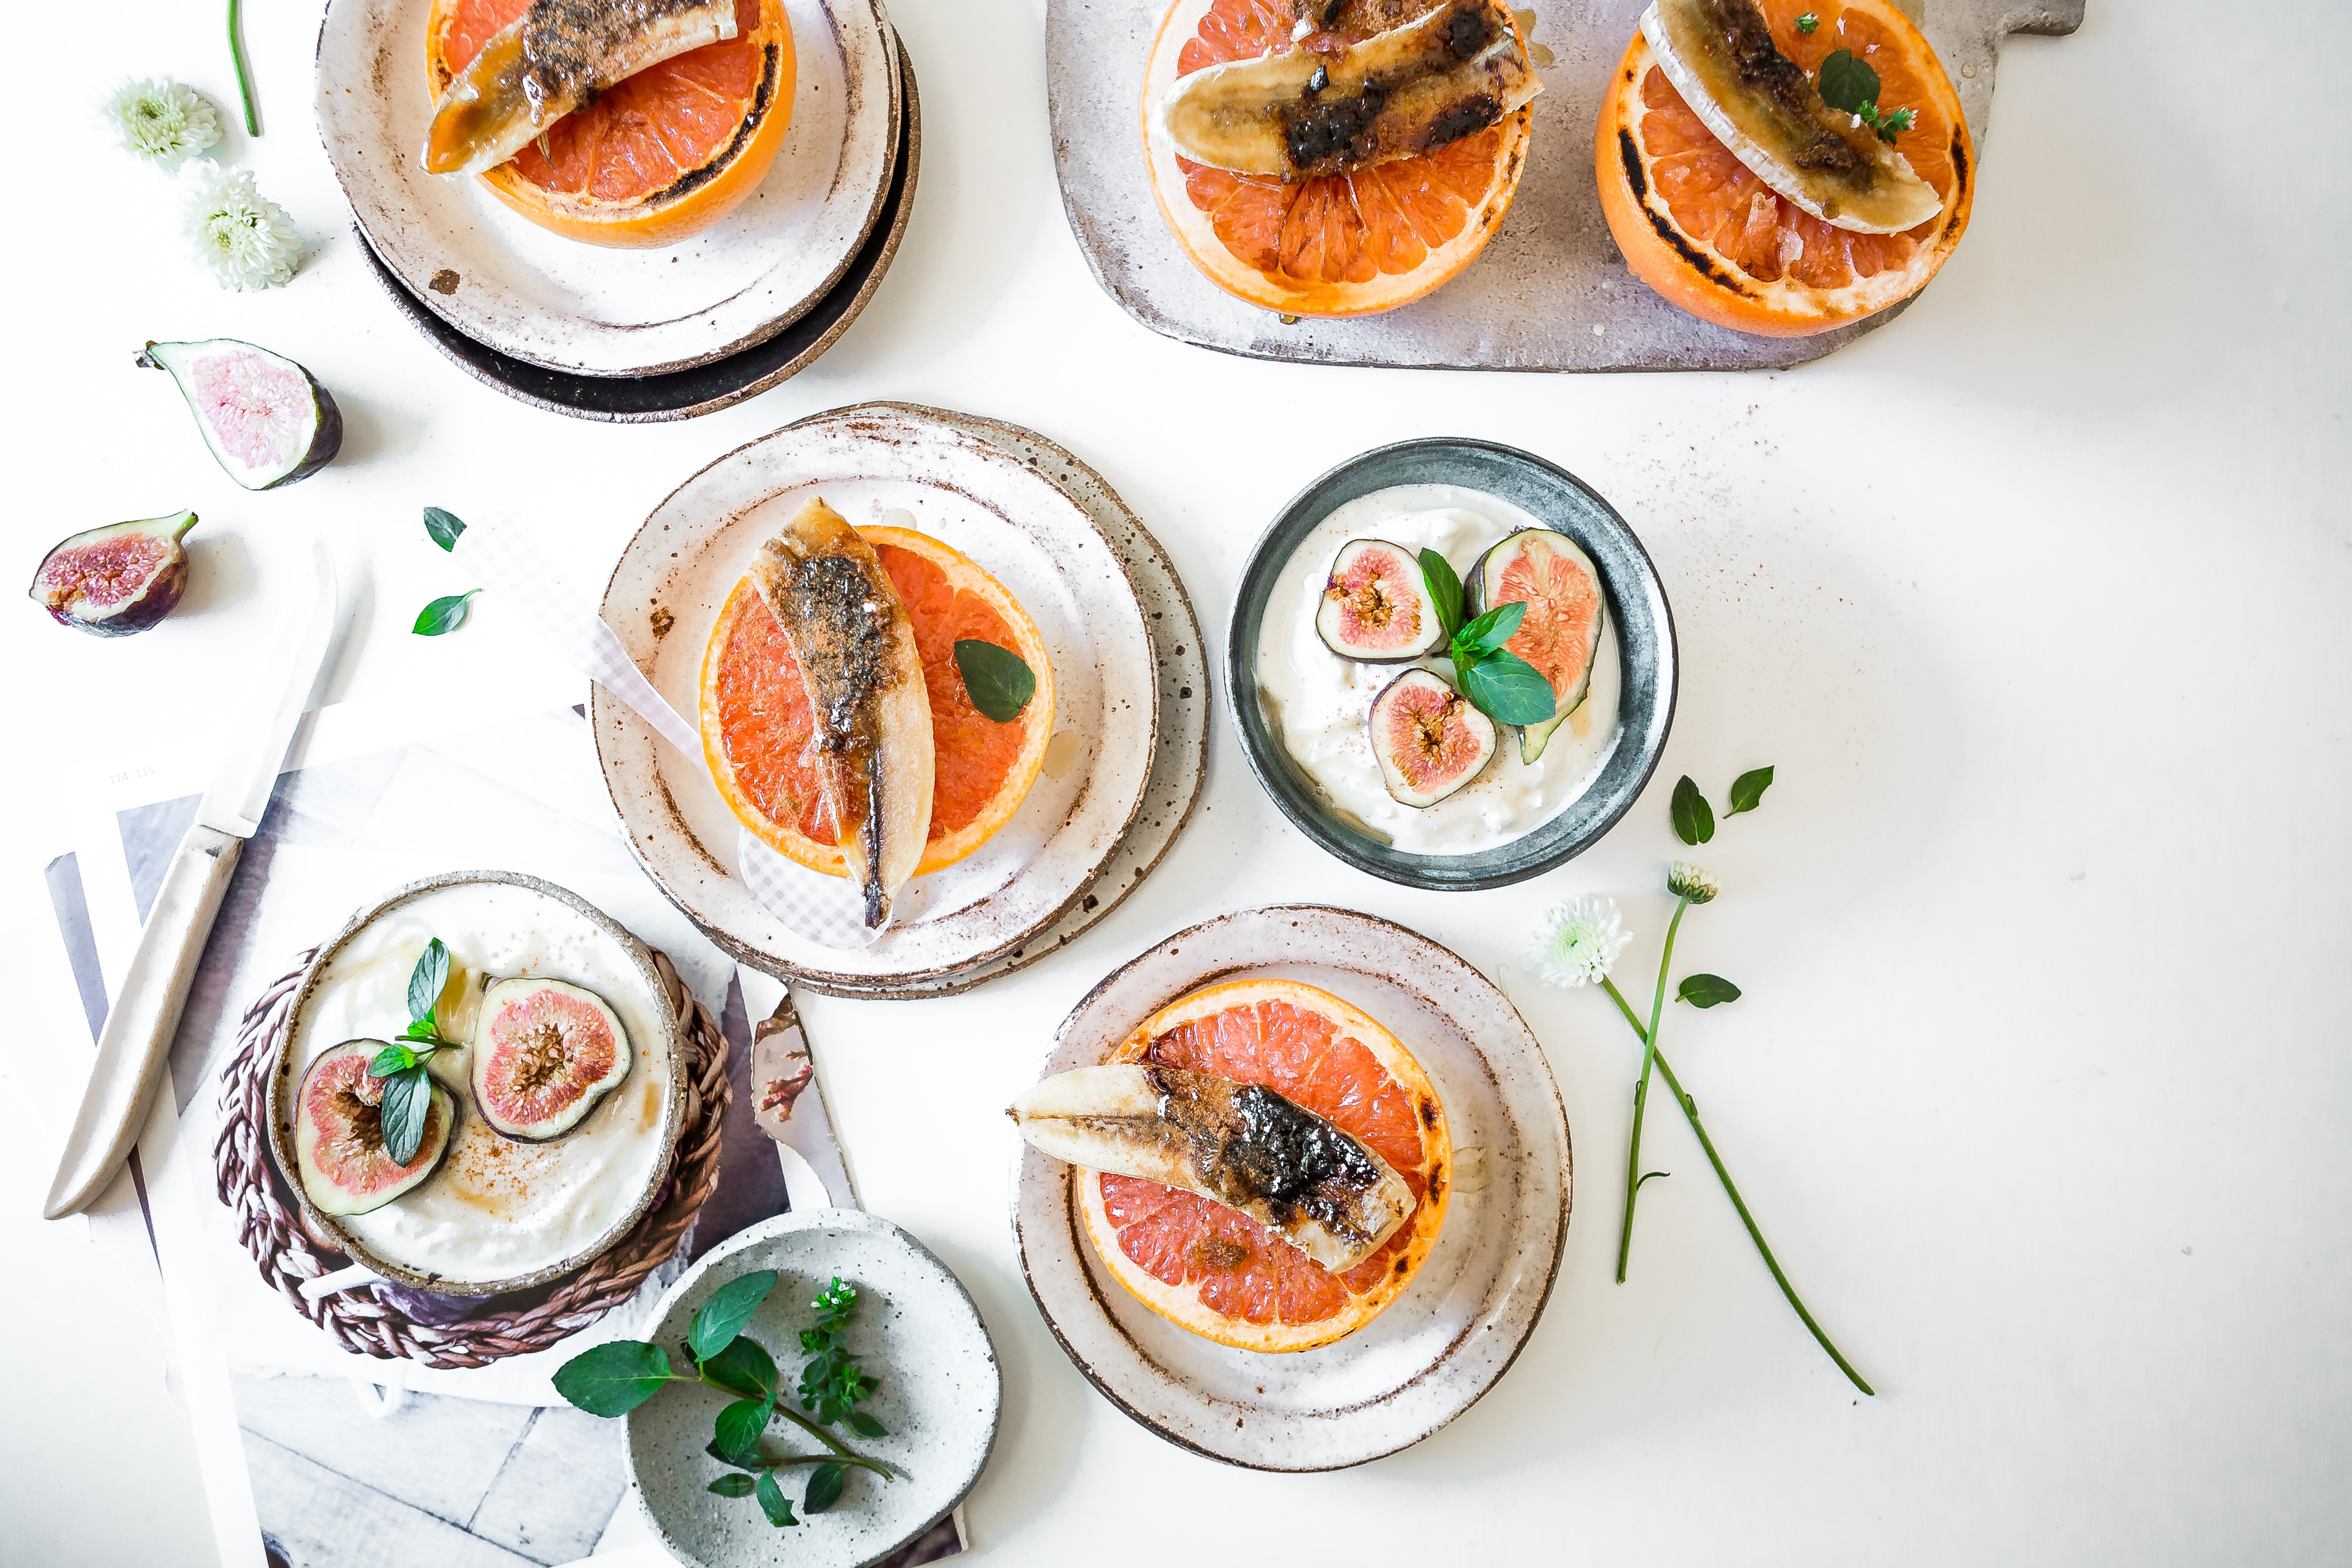 Overhead view of fresh grapefruit topped with nuts and figs over yogurt